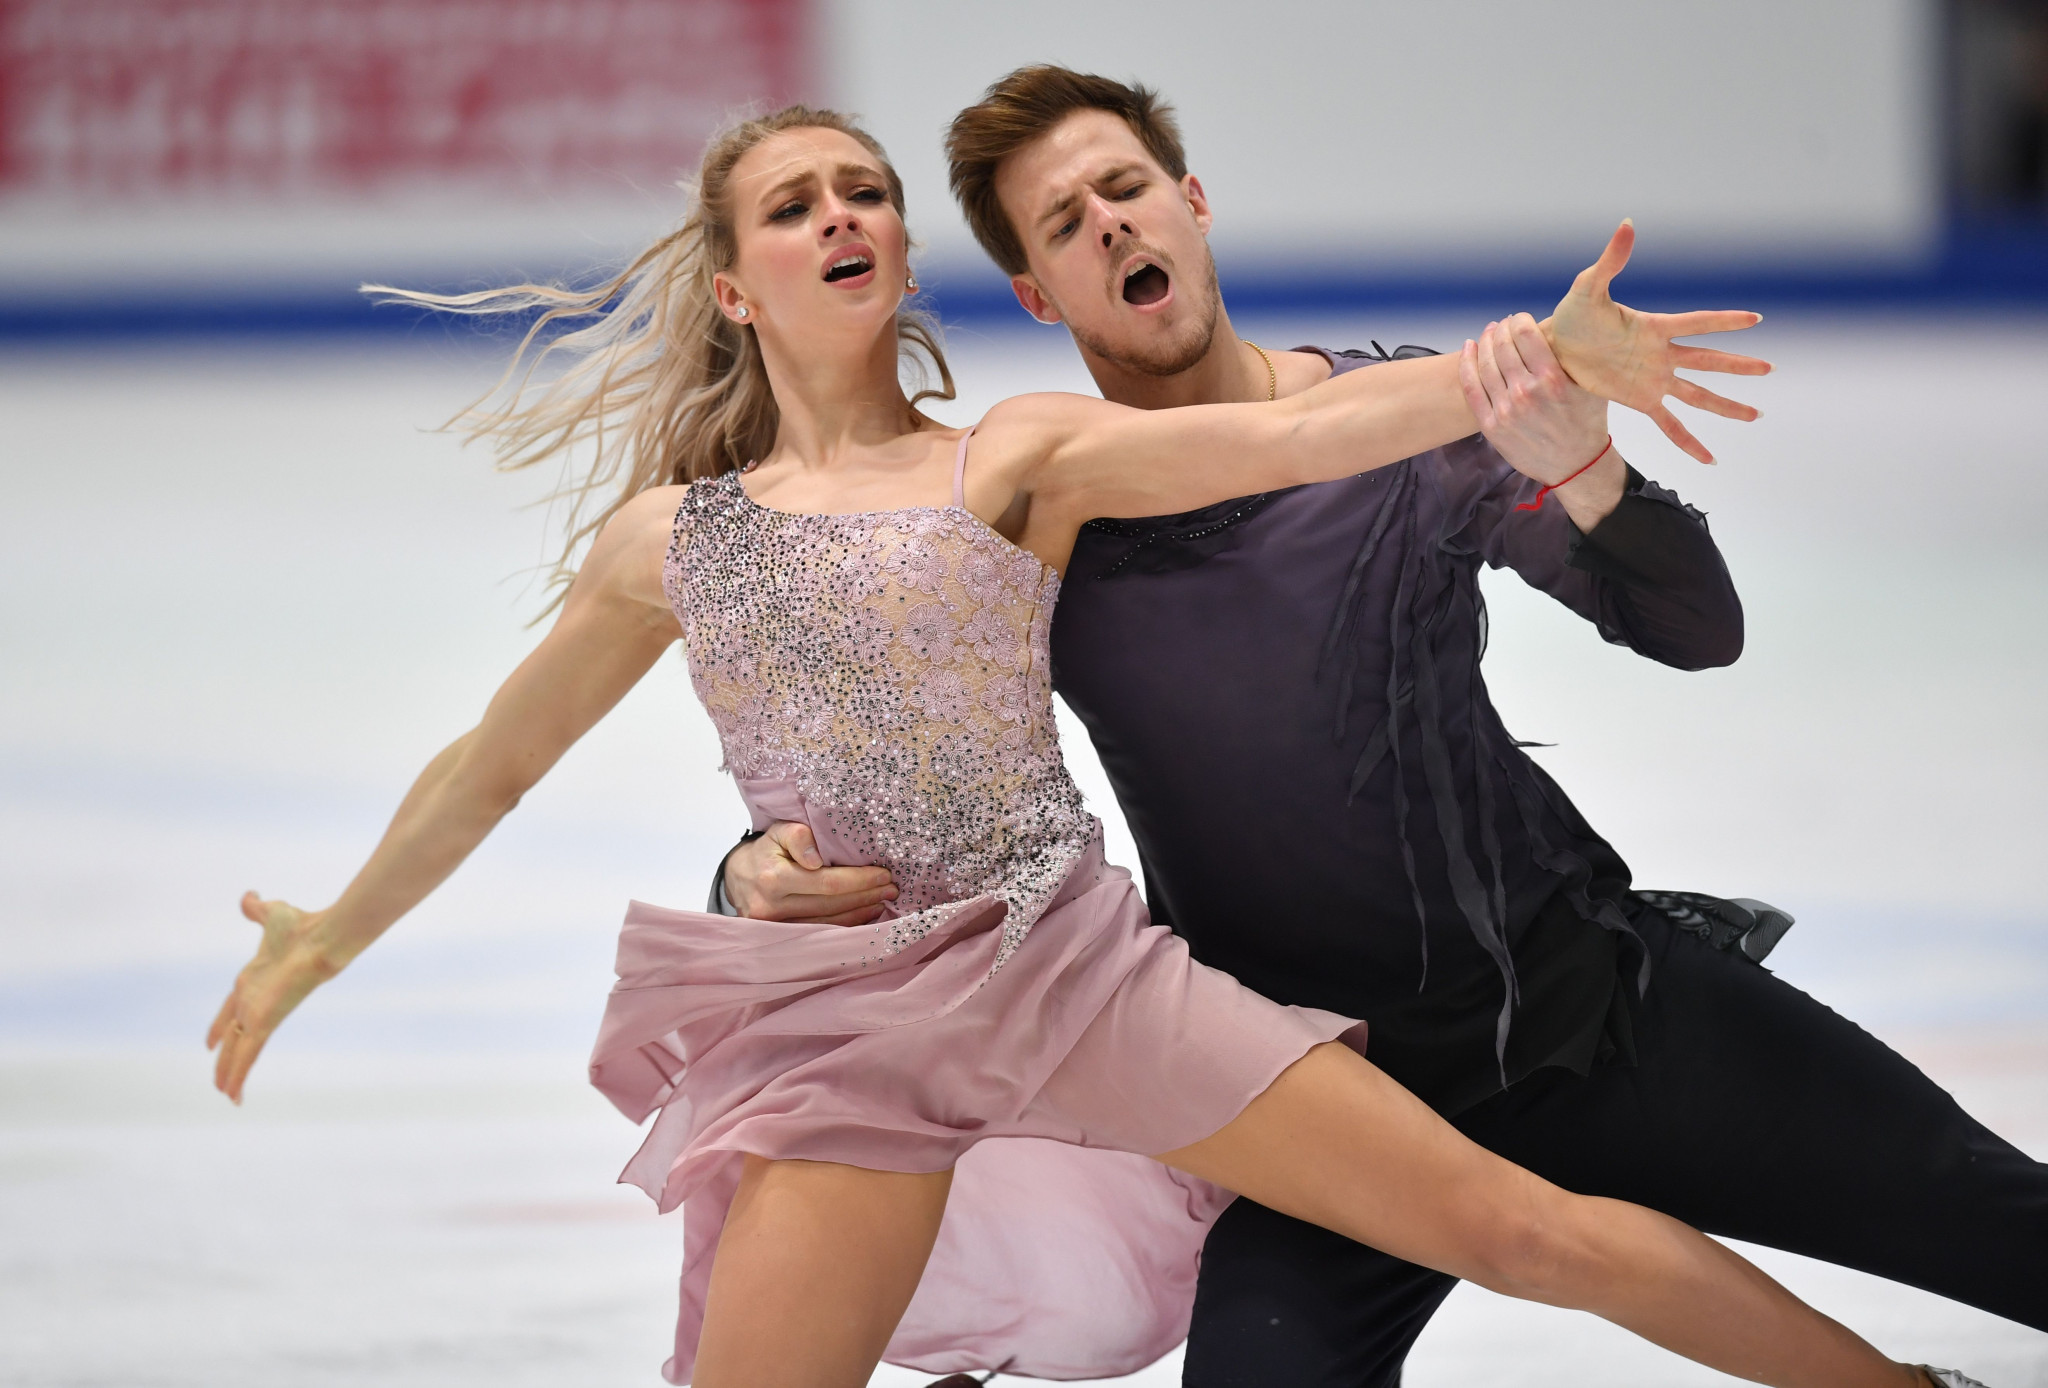 European champions Sinitsina and Katsalapov to compete at Moscow Grand Prix of Figure Skating event